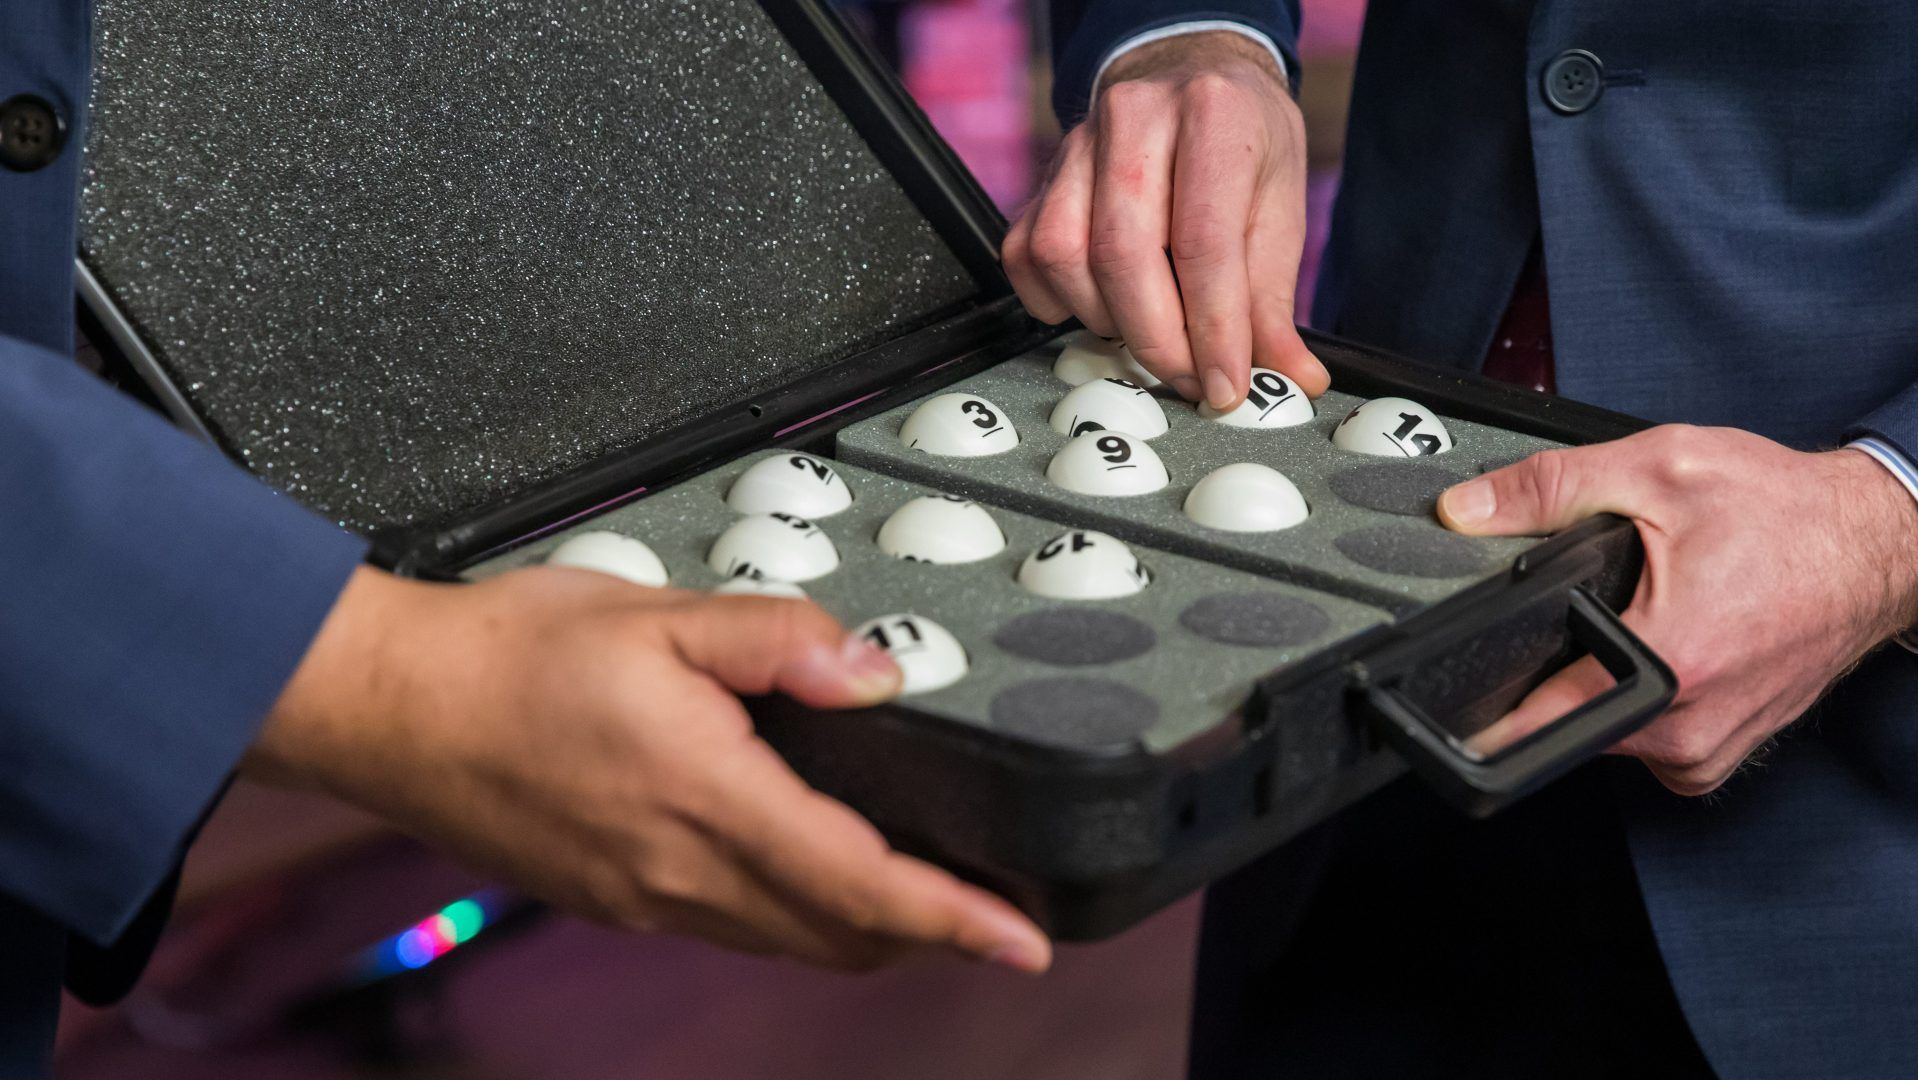 Watch Live 2020 Nhl Draft Lottery On Nbcsn Coverage Of The 2020 Nhl Draft Lottery Begins At 8 P M Et On Nbcsn And The Nbc Sports A Draft Lottery Lottery Nhl